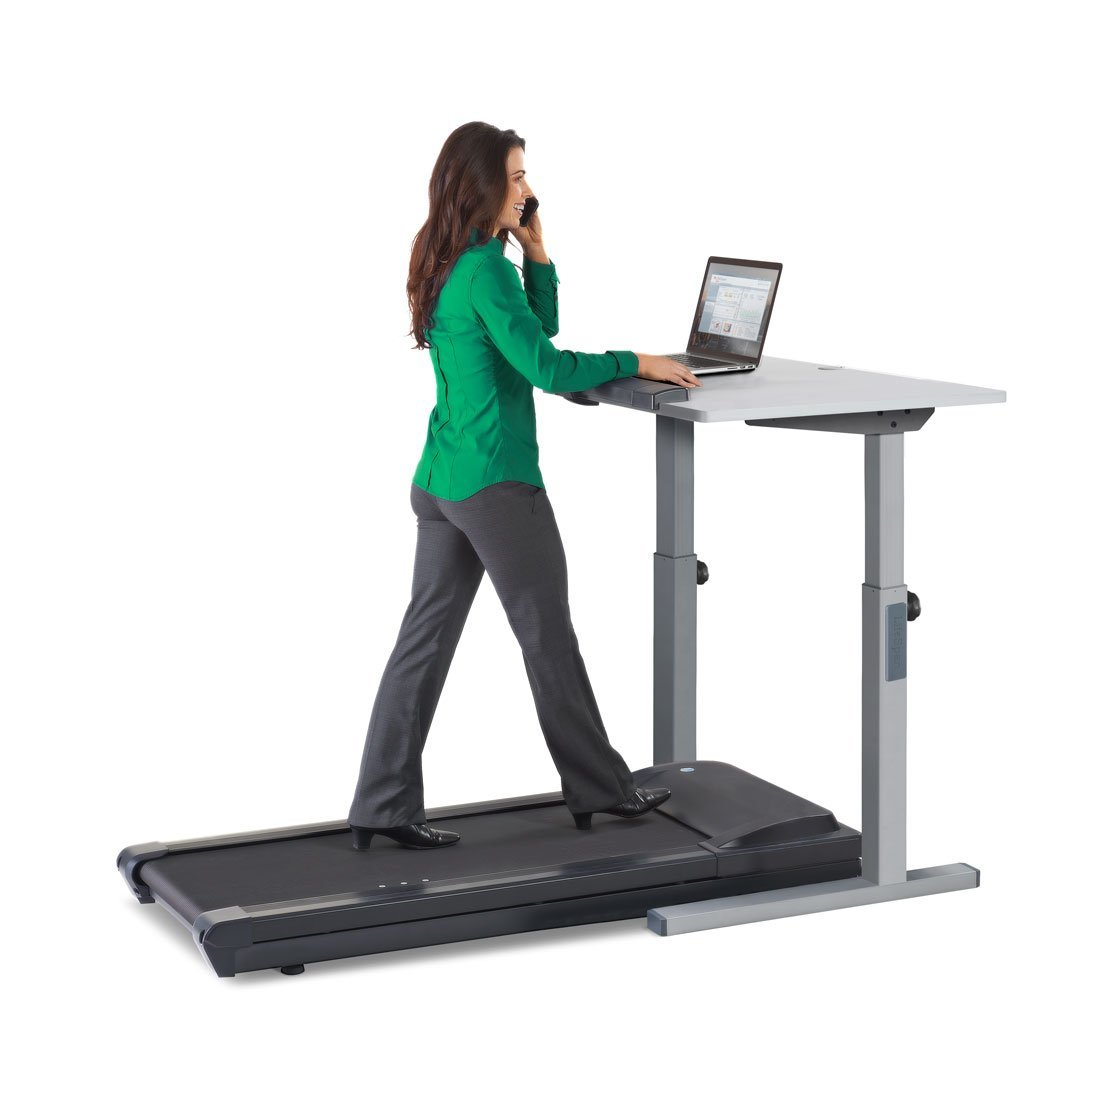 LifeSpan TR1200 DT5 - Manual Adjust Treadmill Desk